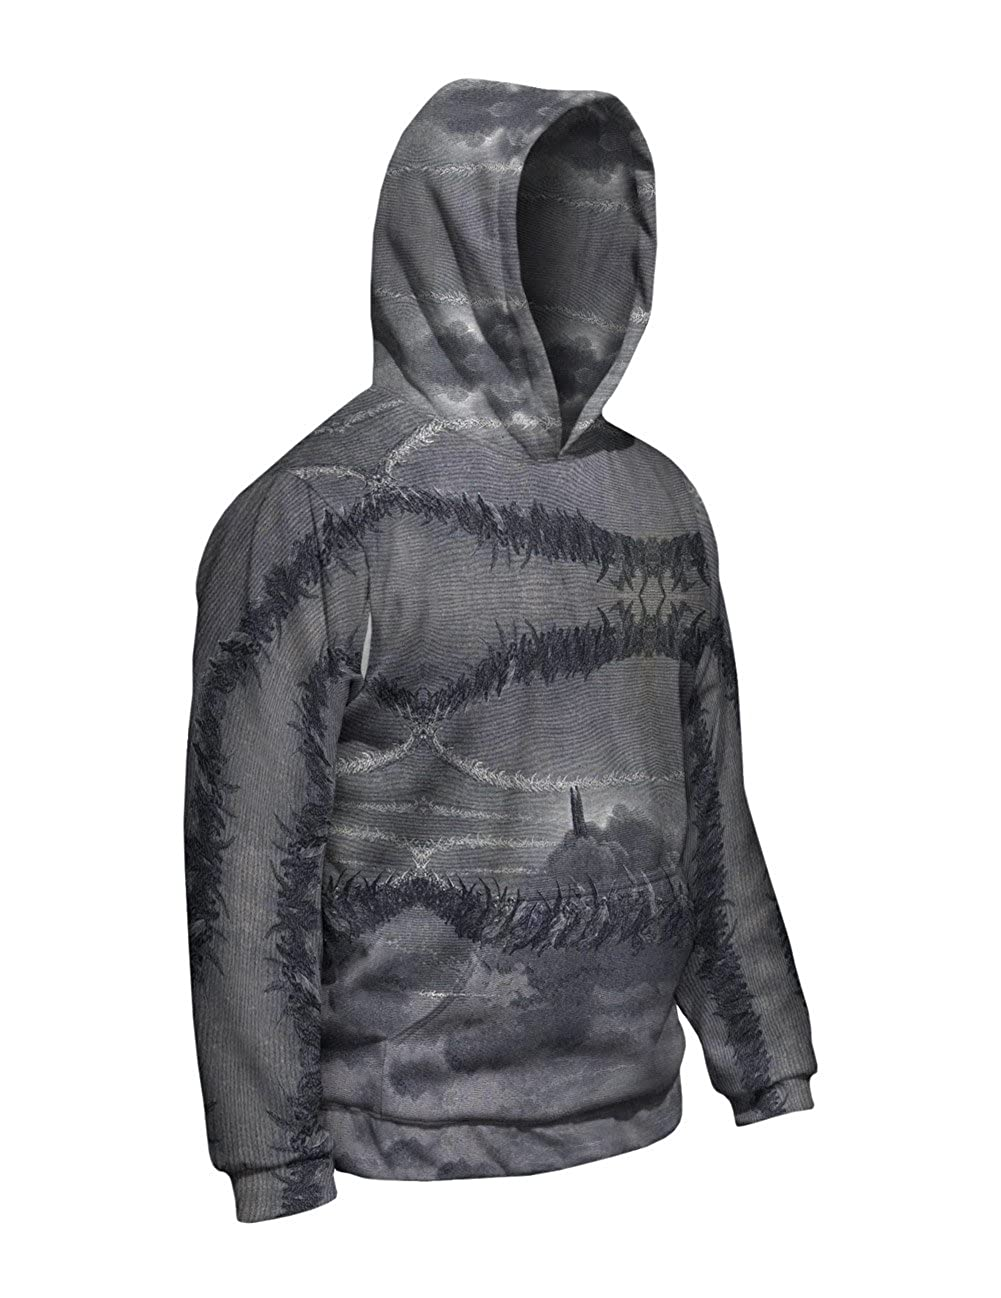 The Divine Comedy Mens Hoodie 2522 Yizzam- Gustave Dore Allover Print